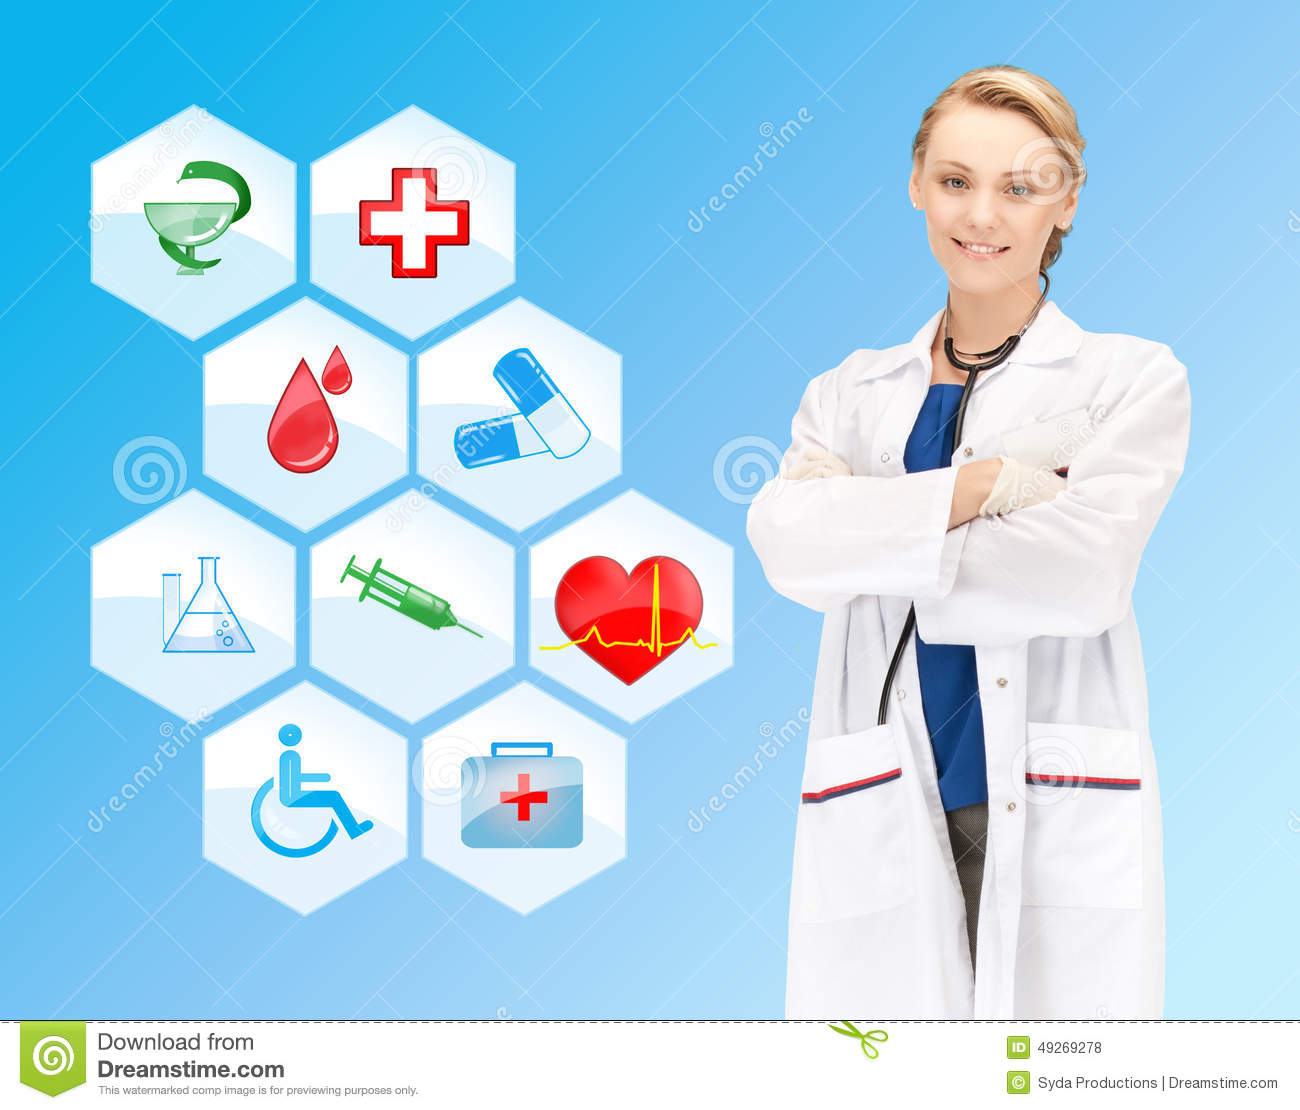 Smiling Doctor Over Medical Icons Blue Background Stock Photo Image Of Medical Occupation 49269278